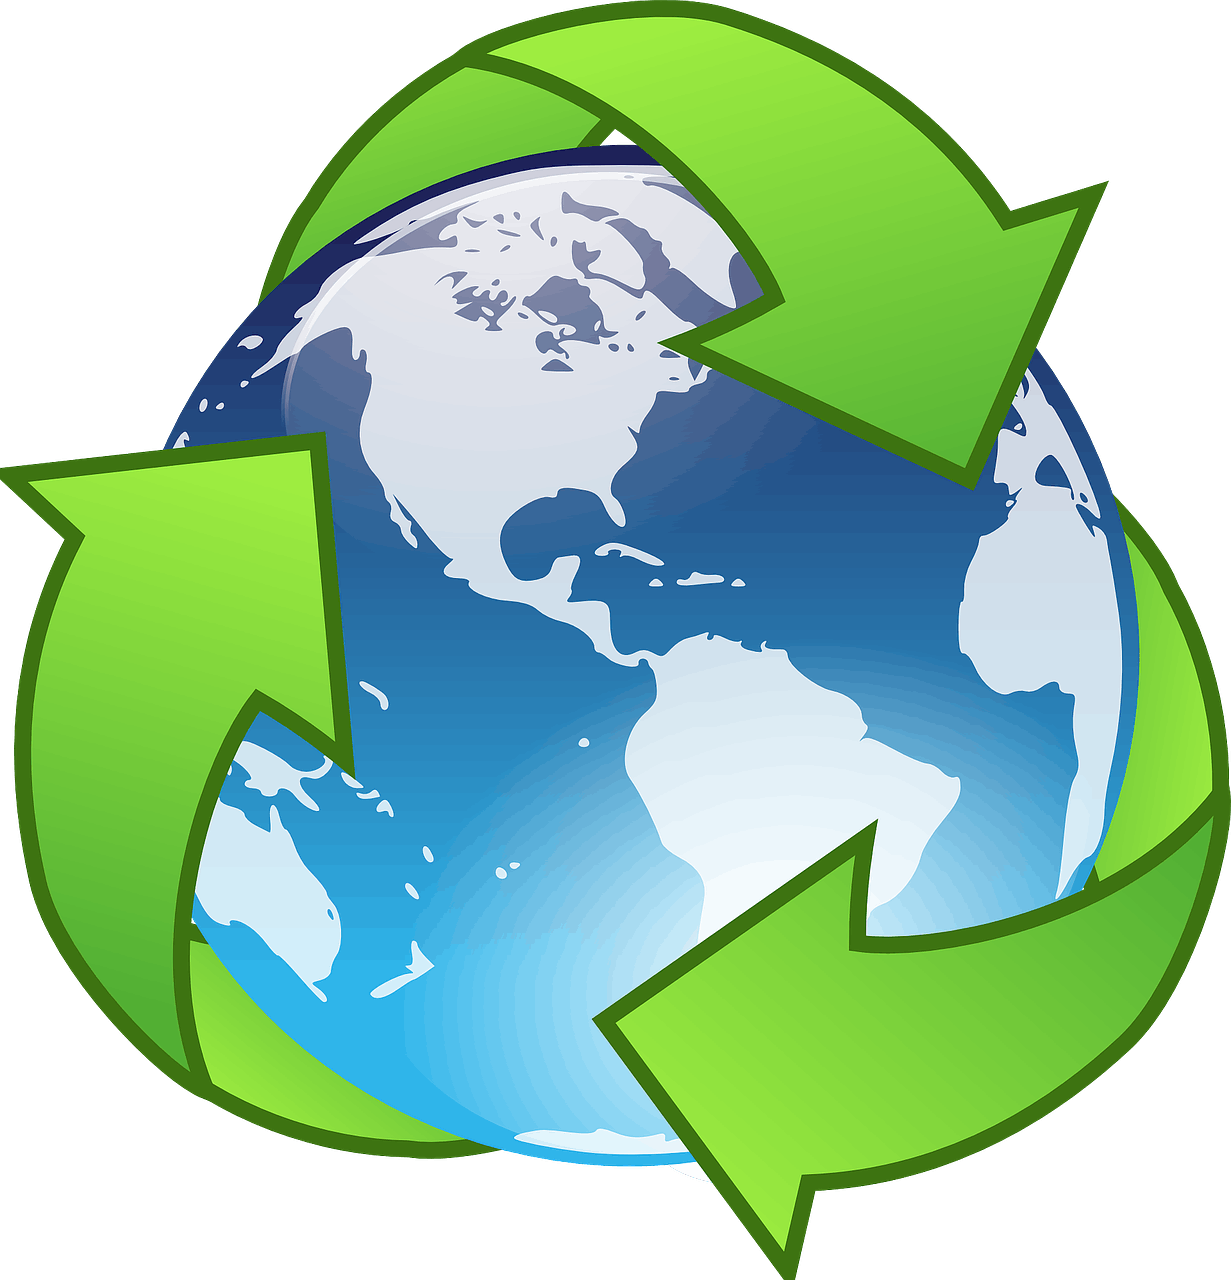 image showing recycling